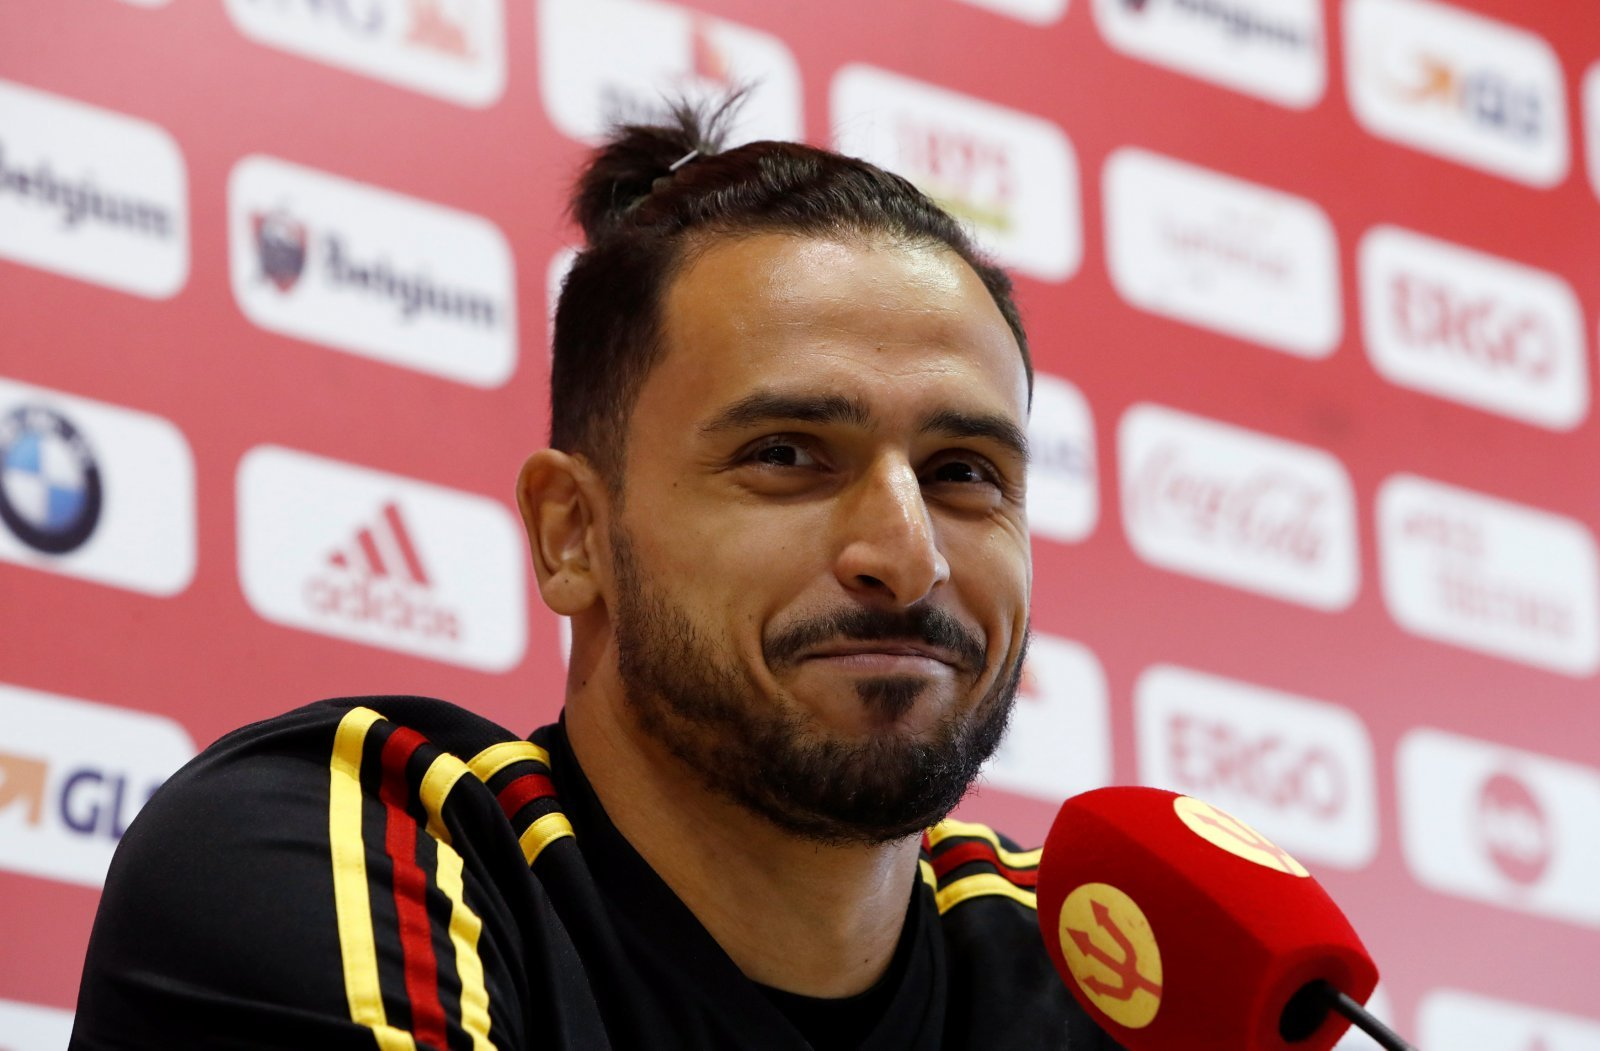 Nacer Chadli's departure is a huge shame for West Bromwich Albion